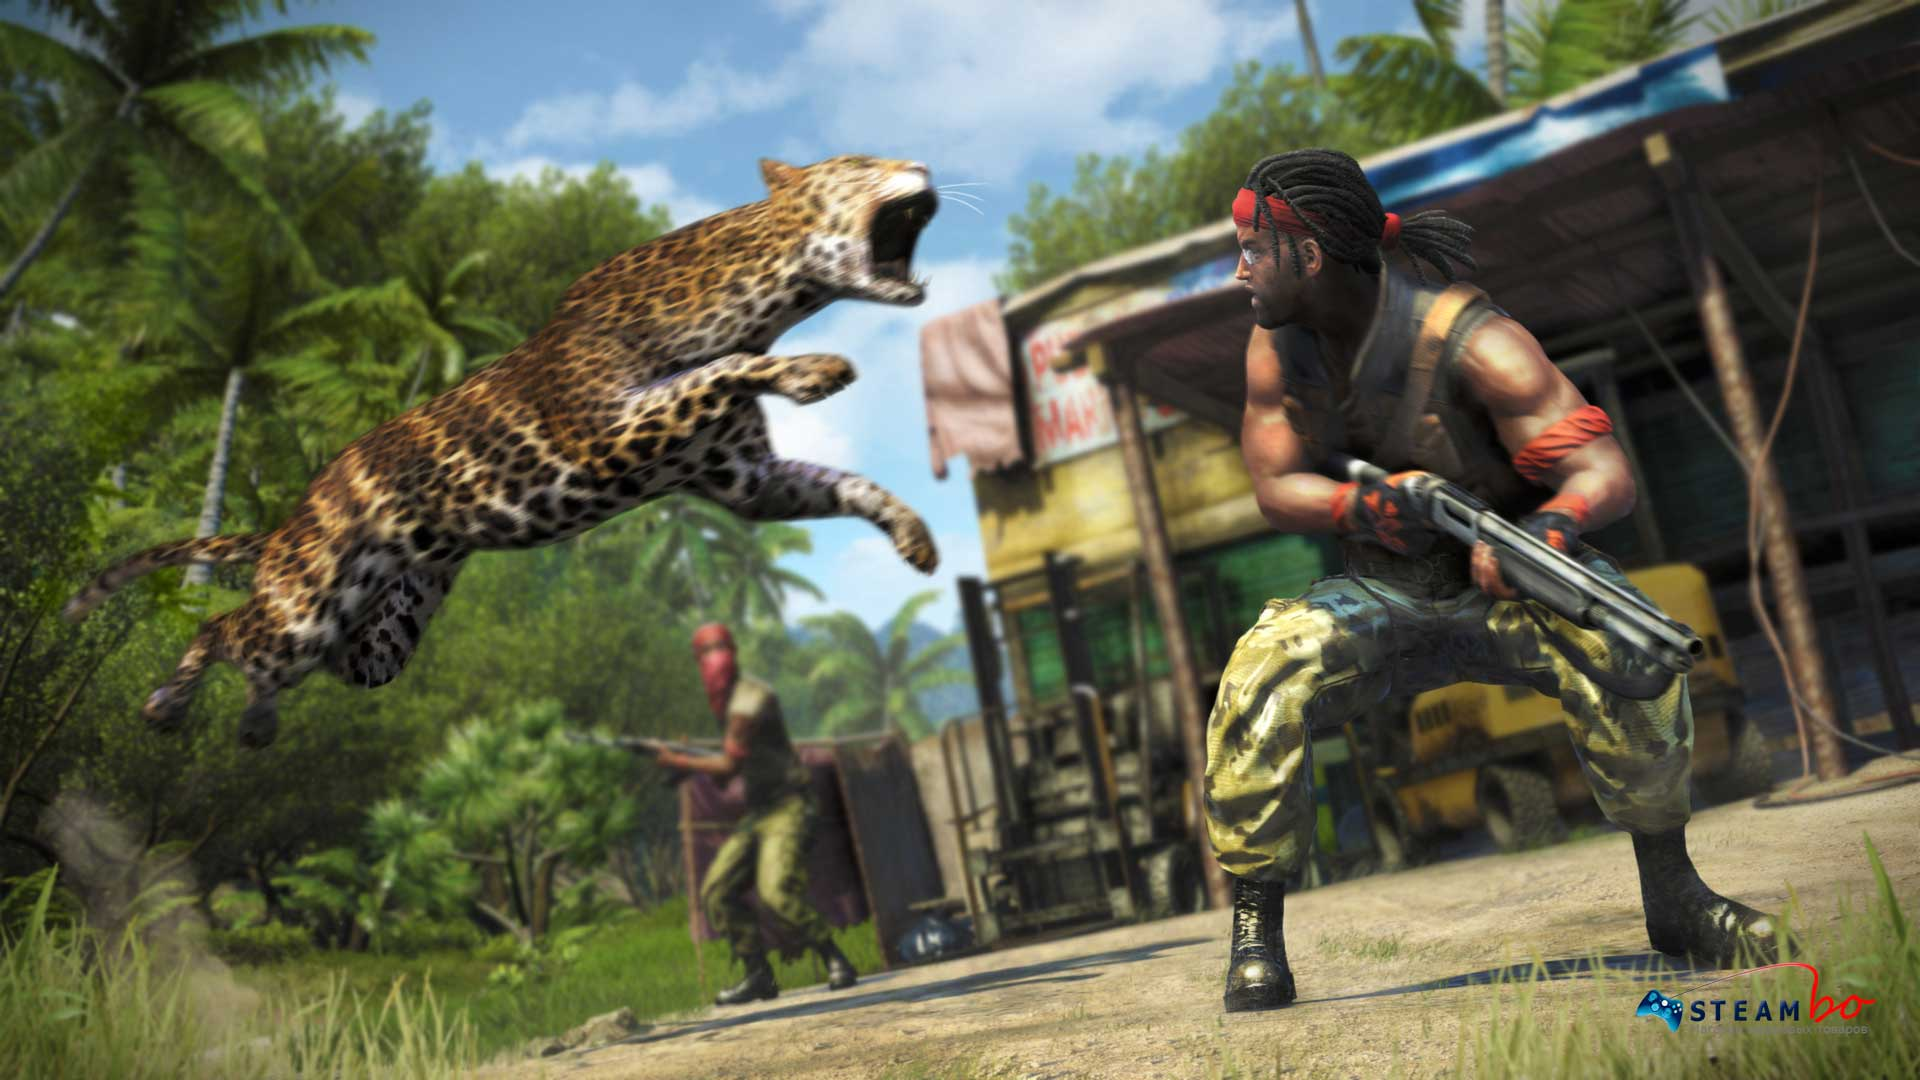 Far Cry 3 Region Free (Steam Gift/Key)